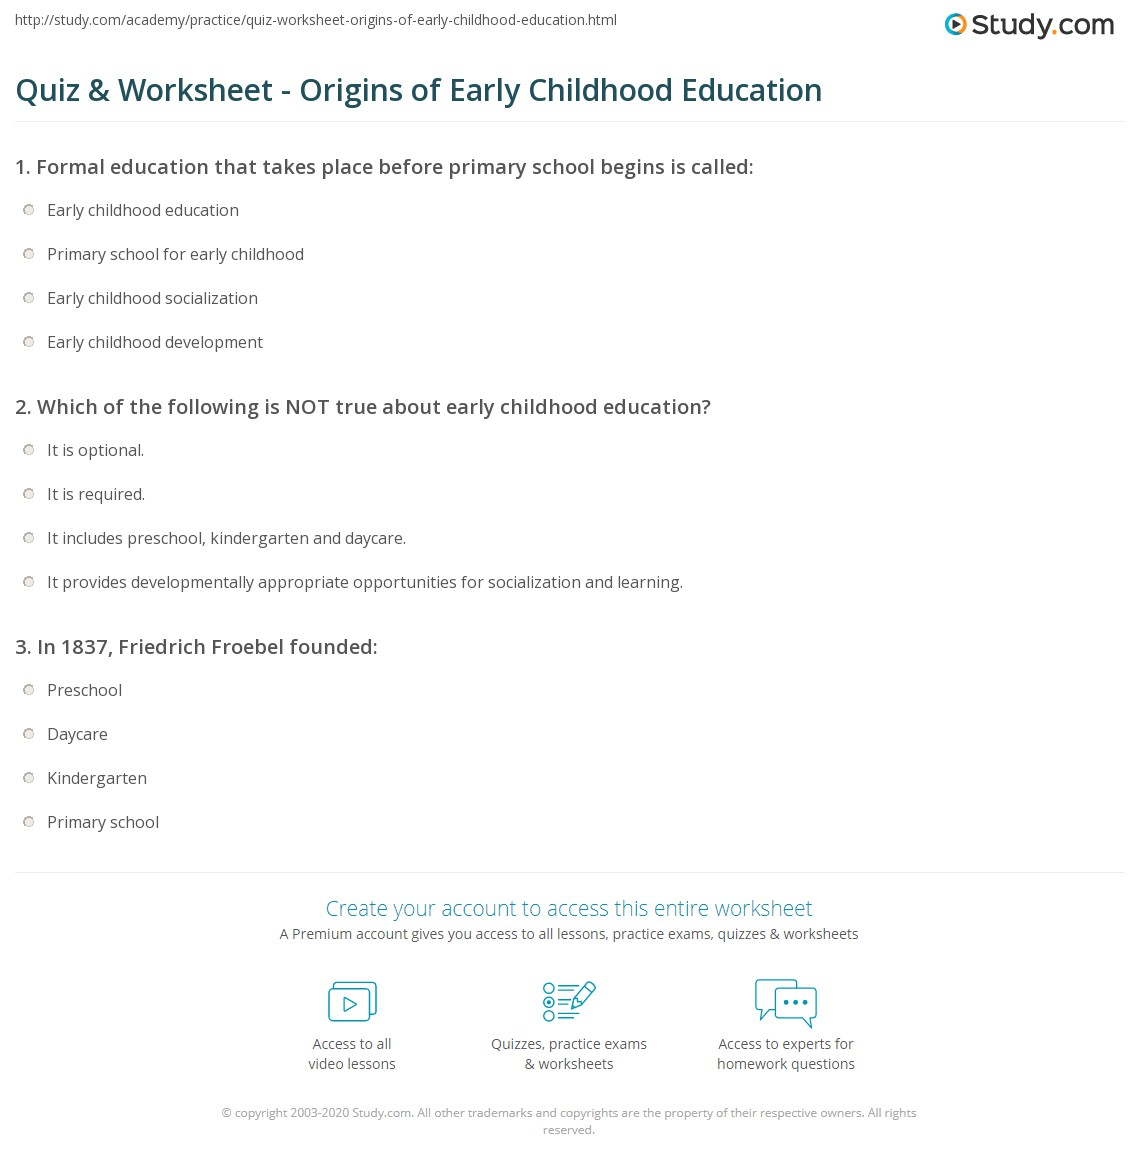 Quiz & Worksheet - Origins of Early Childhood Education | Study.com